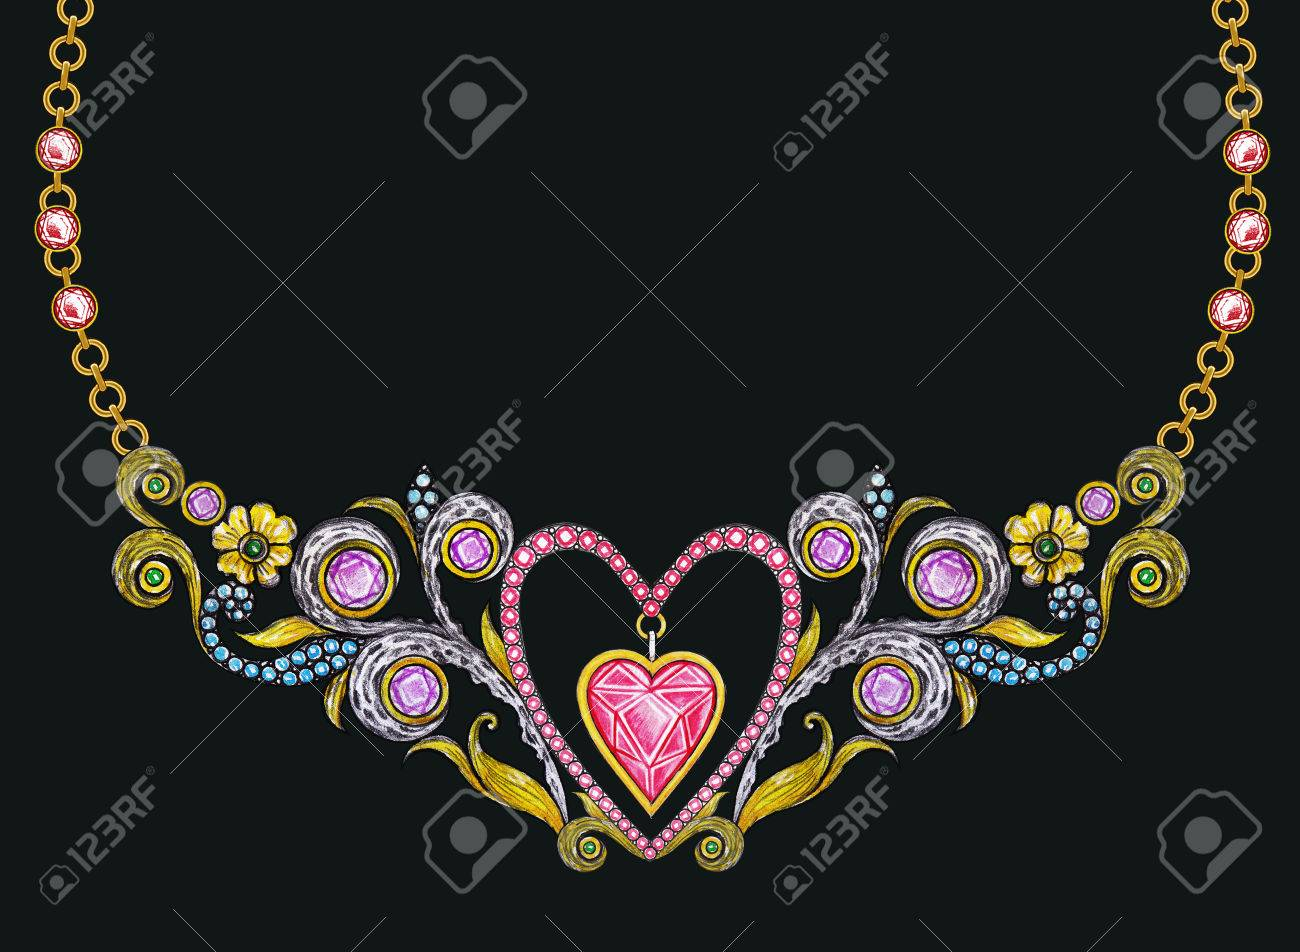 Jewelry Design Vintage Art Mix Heart Necklace Hand Pencil Drawing